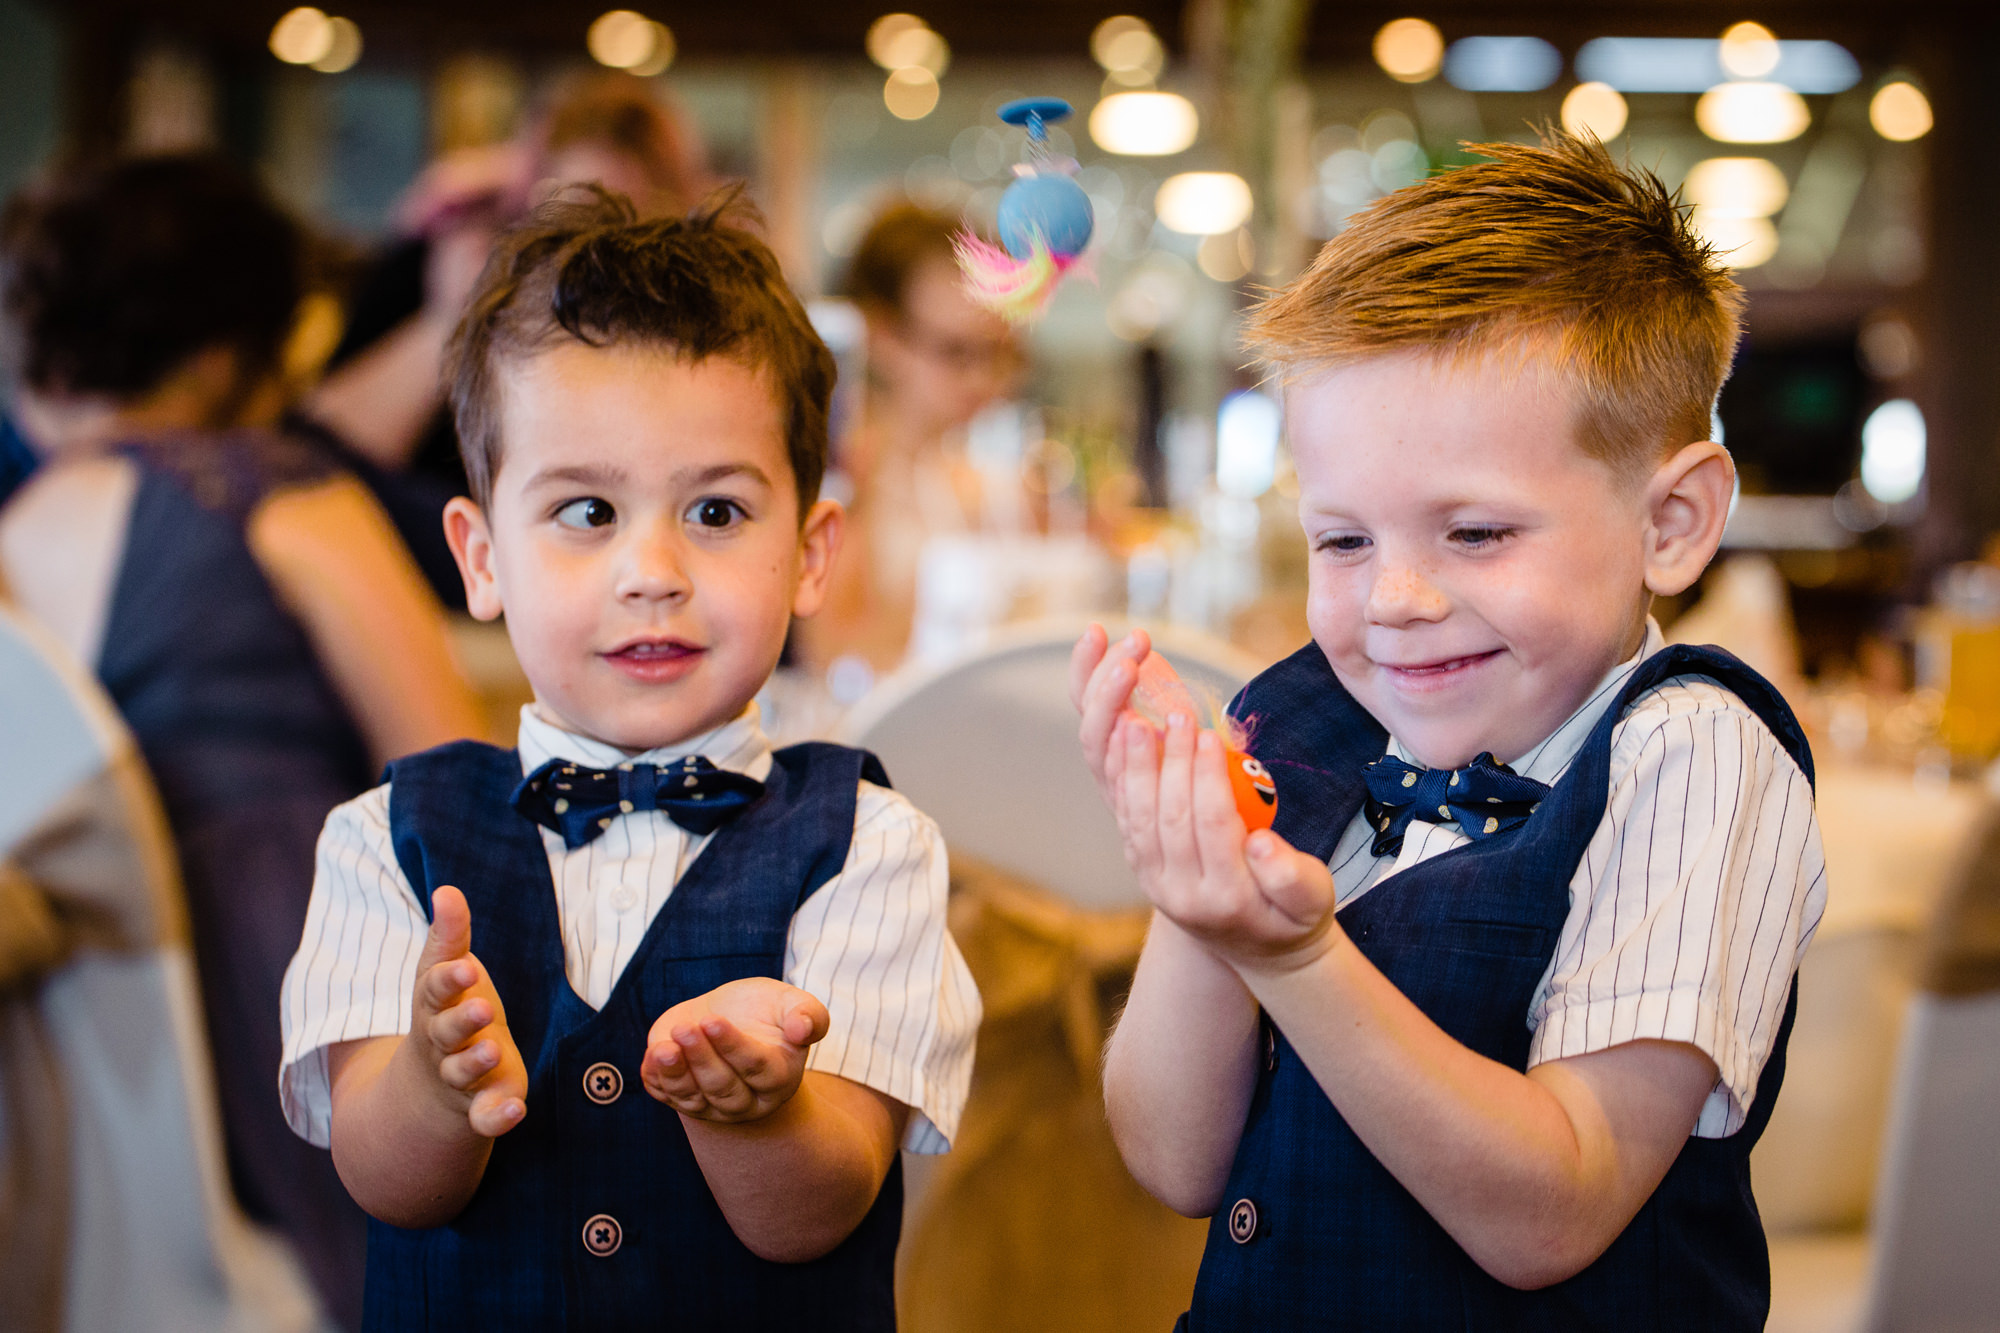 two page boys playing with the toys they got for wedding favours. huntsman inn wedding photography by emma and rich.